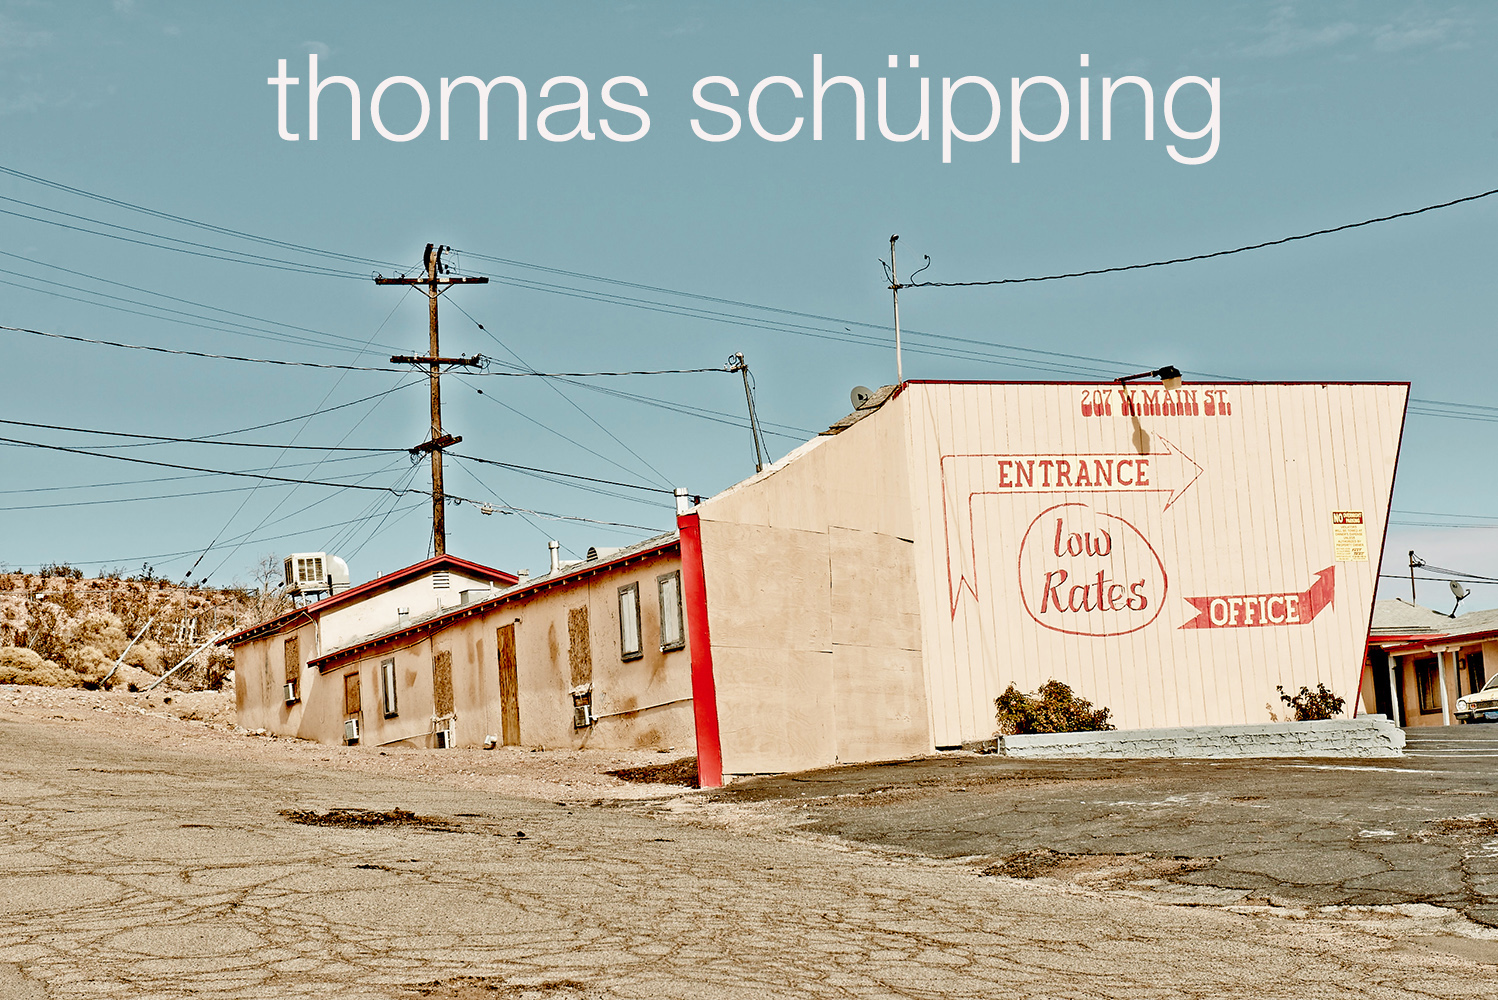 thomasschüpping, schüpping, schuepping, thomas8, zzyzx-schuepping, zzyzx